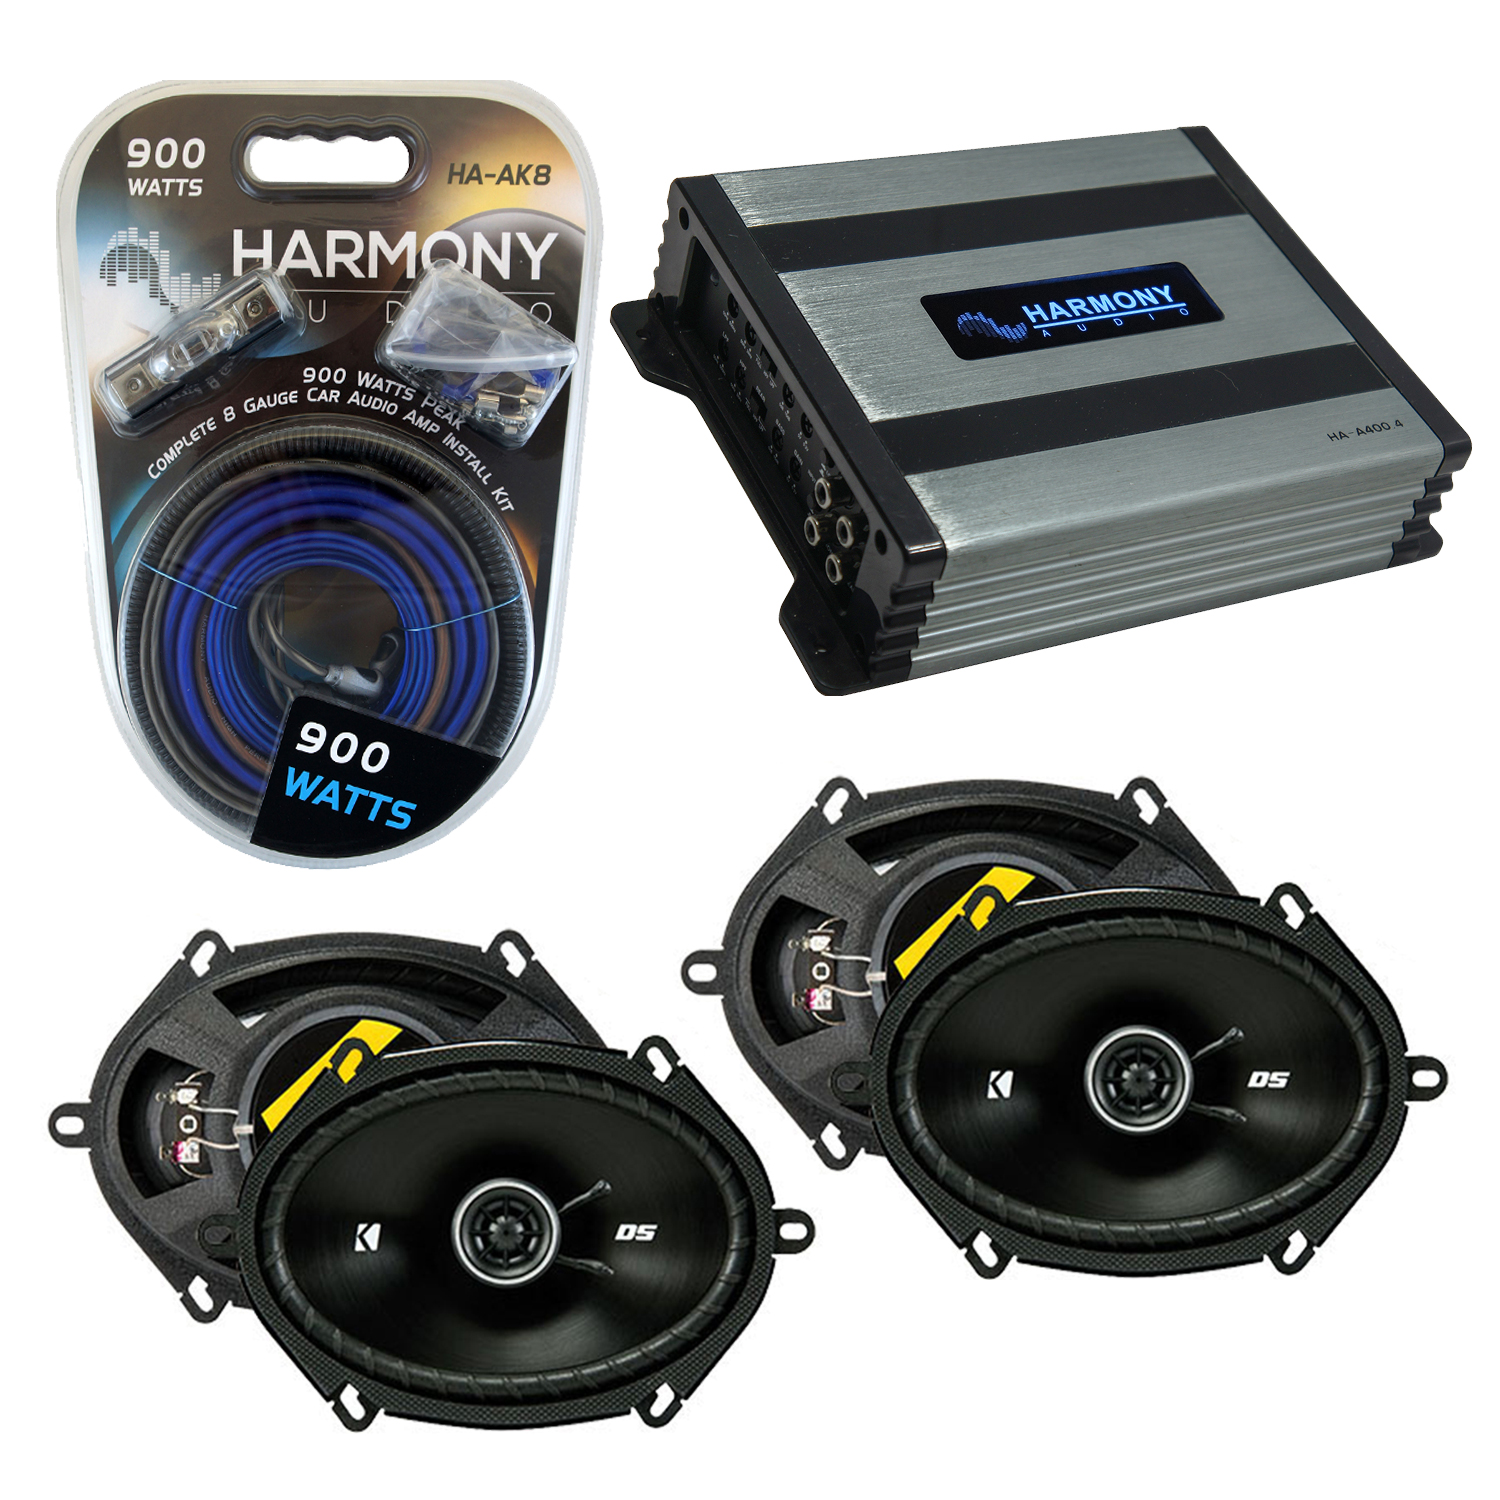 Compatible with Nissan Quest 1993-2006 Factory Speaker Replacement Kicker (2) DSC68 & Harmony HA-A400.4